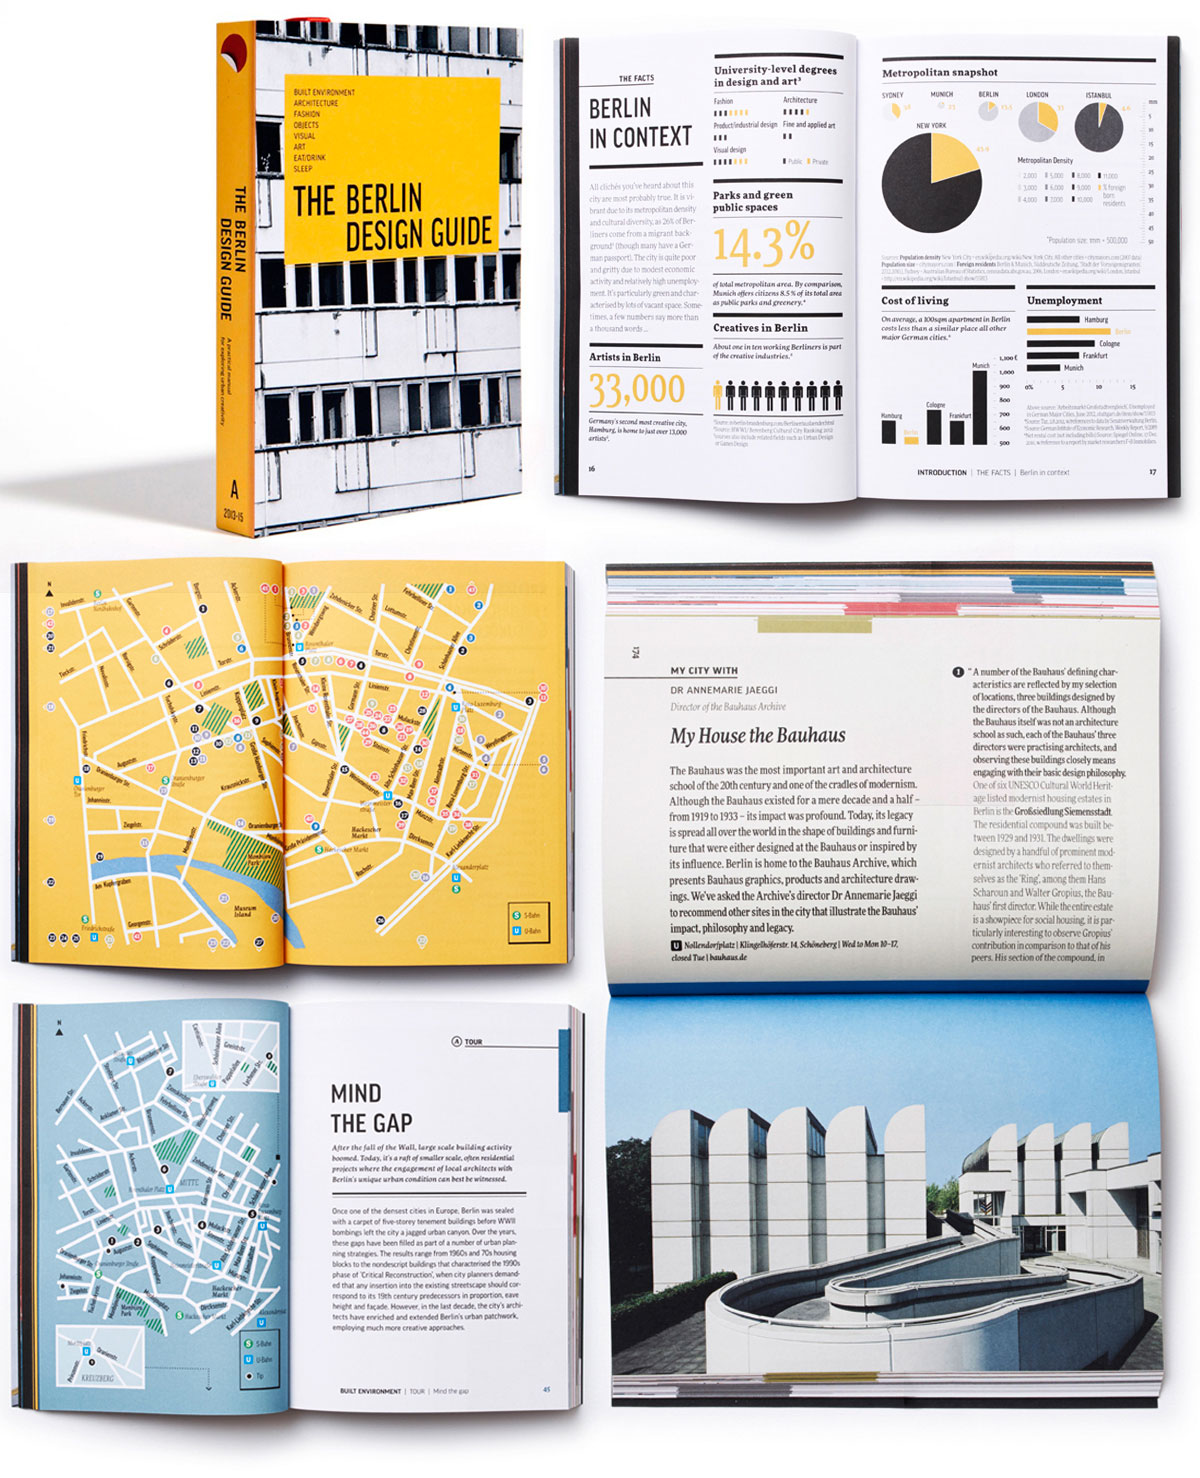 The Berlin Design Guide | Yellowtrace.